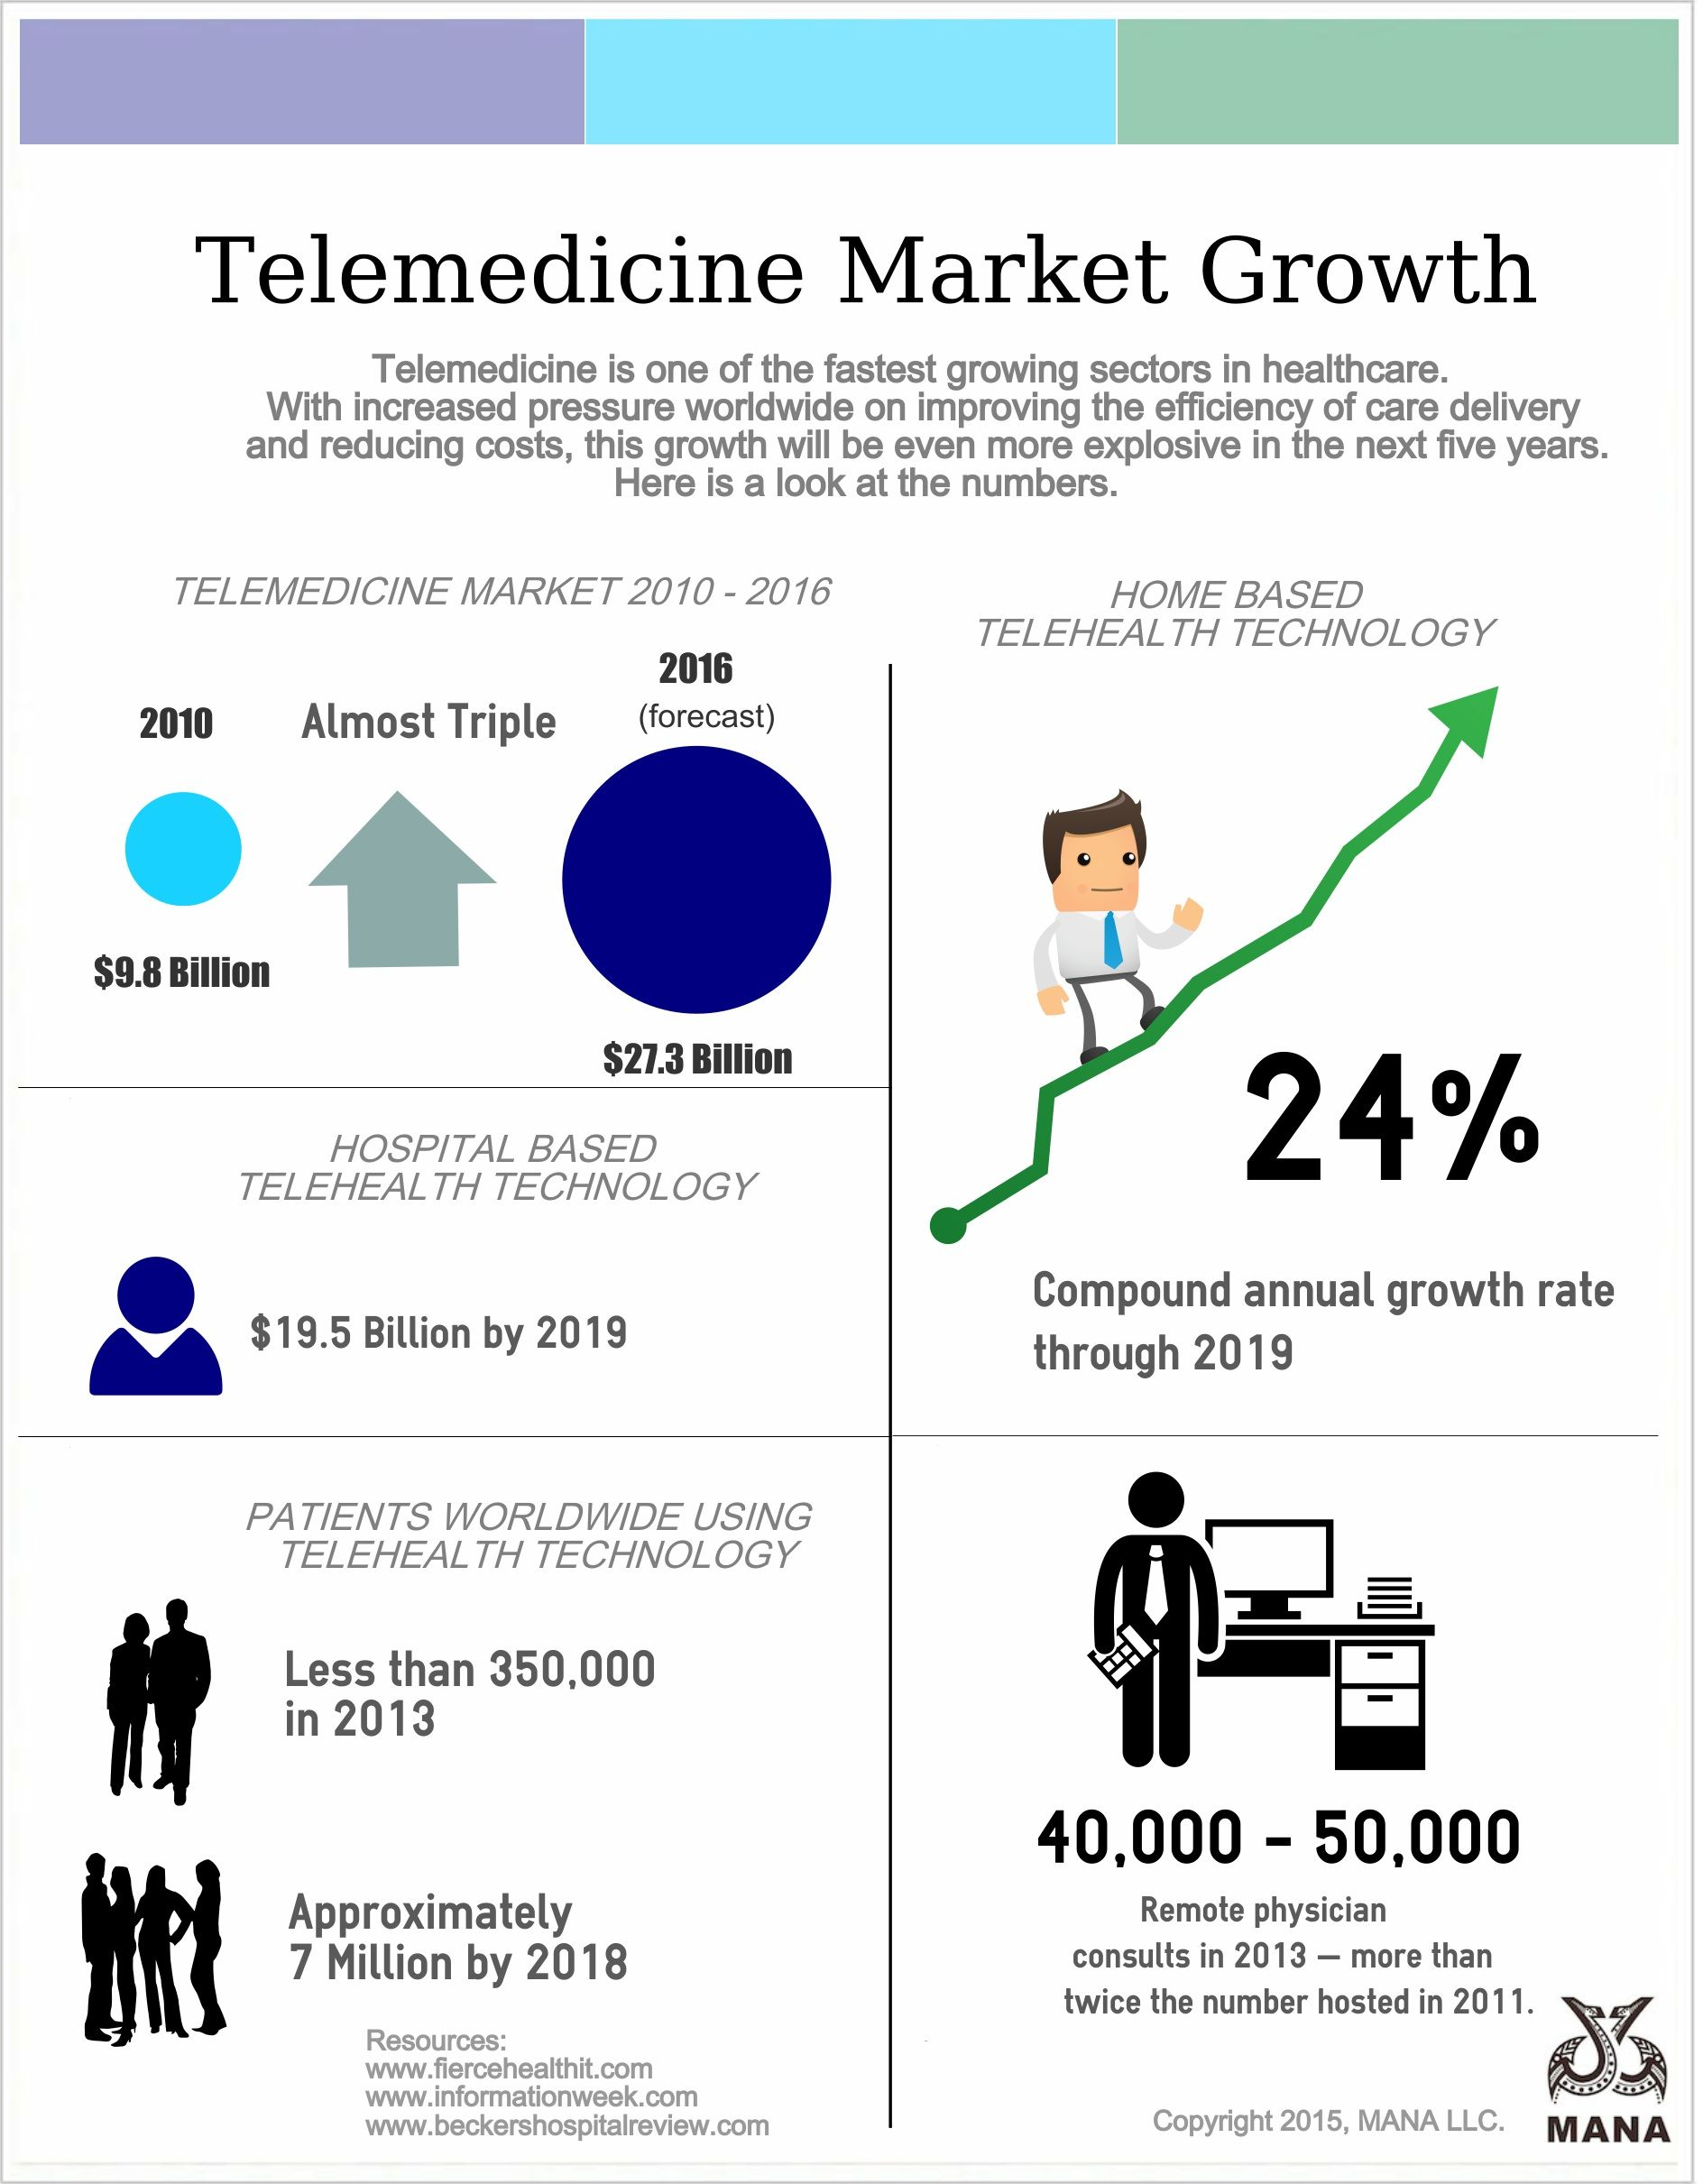 Telemedicine Is One Of The Fastest Growing Sectors In Healthcare